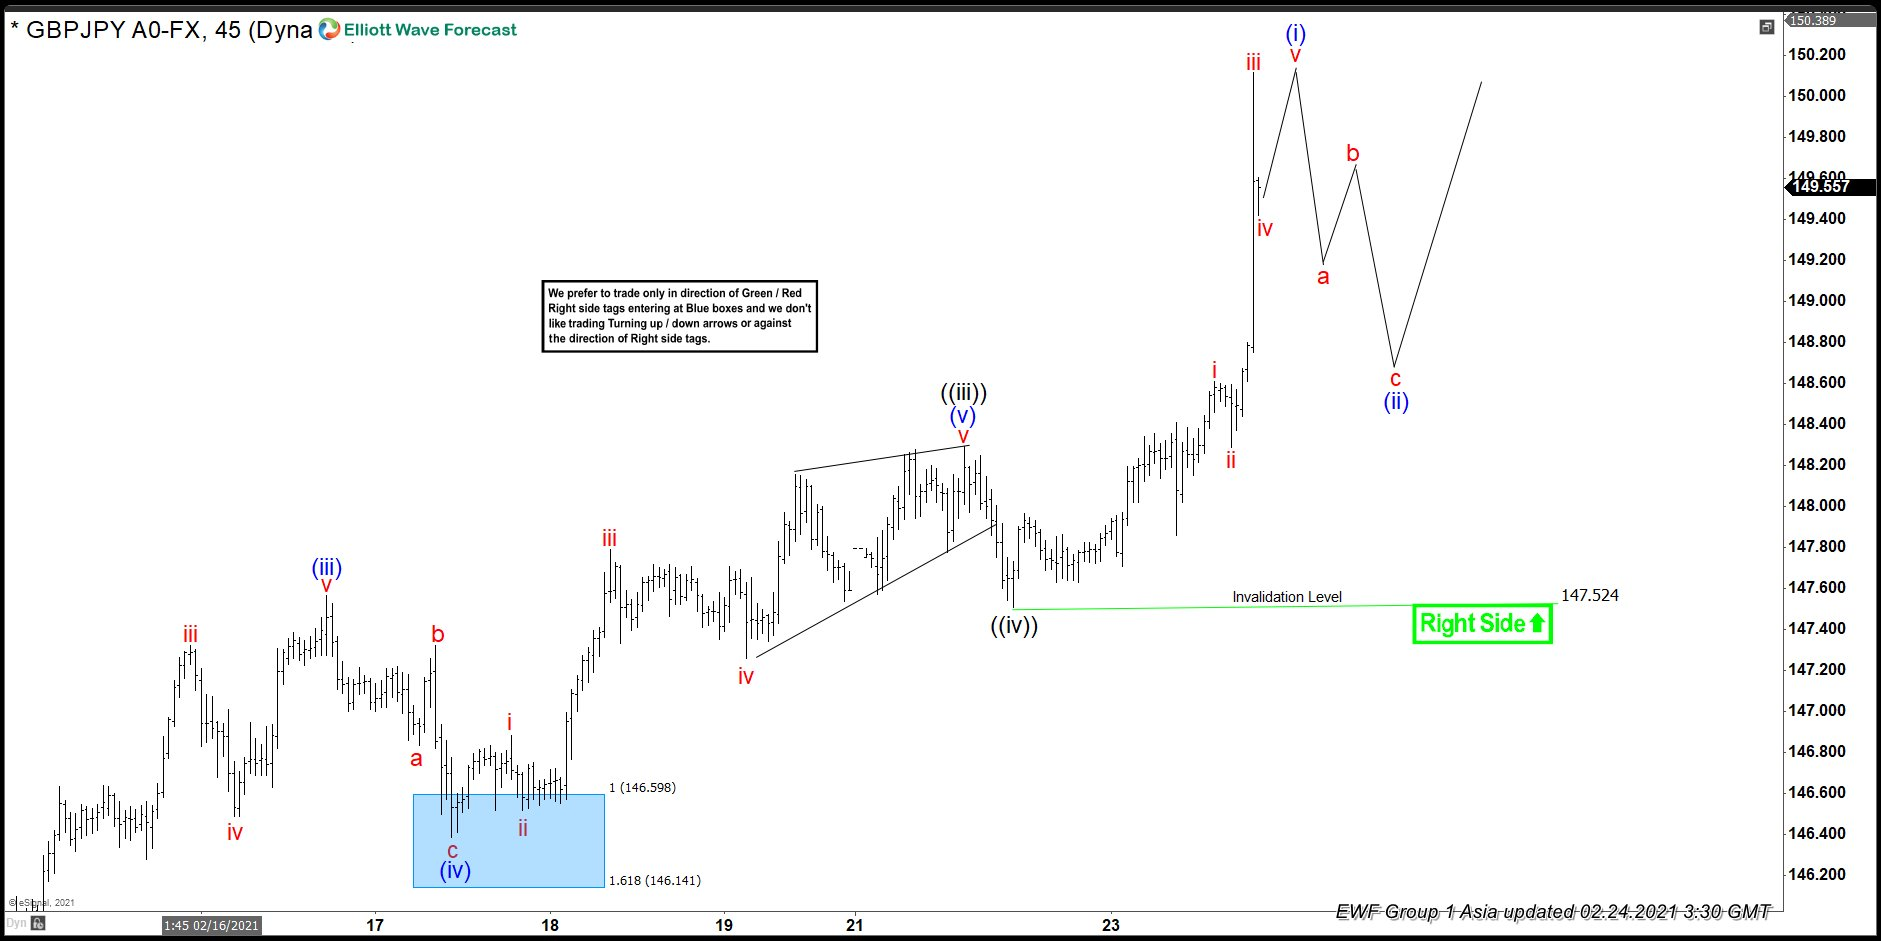 Elliott Wave View: GBPJPY Rally Likely to Extend Higher